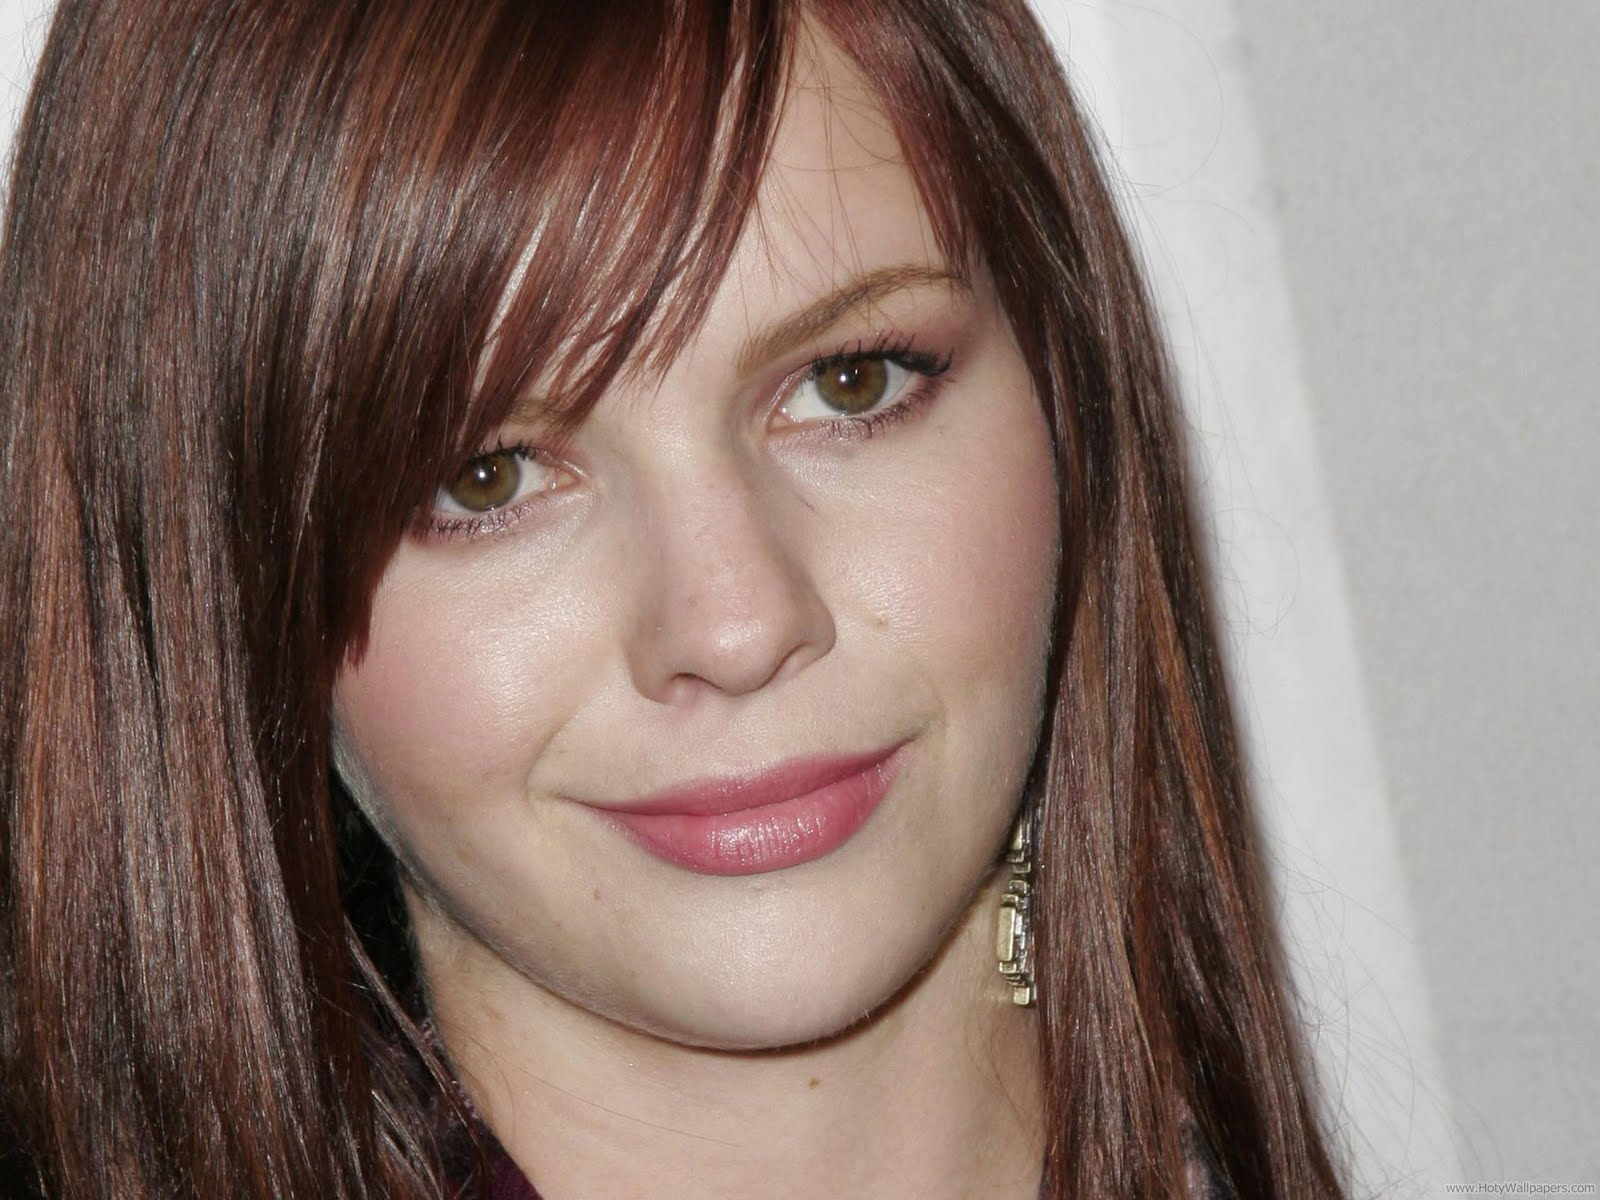 http://2.bp.blogspot.com/-OMpd_LLuaoE/Tvx93v6d5gI/AAAAAAAABnw/dtg5b58BuXE/s1600/hollywood_actress_amber_tamblyn_wide_wallpaper-1440x1280-06.jpg